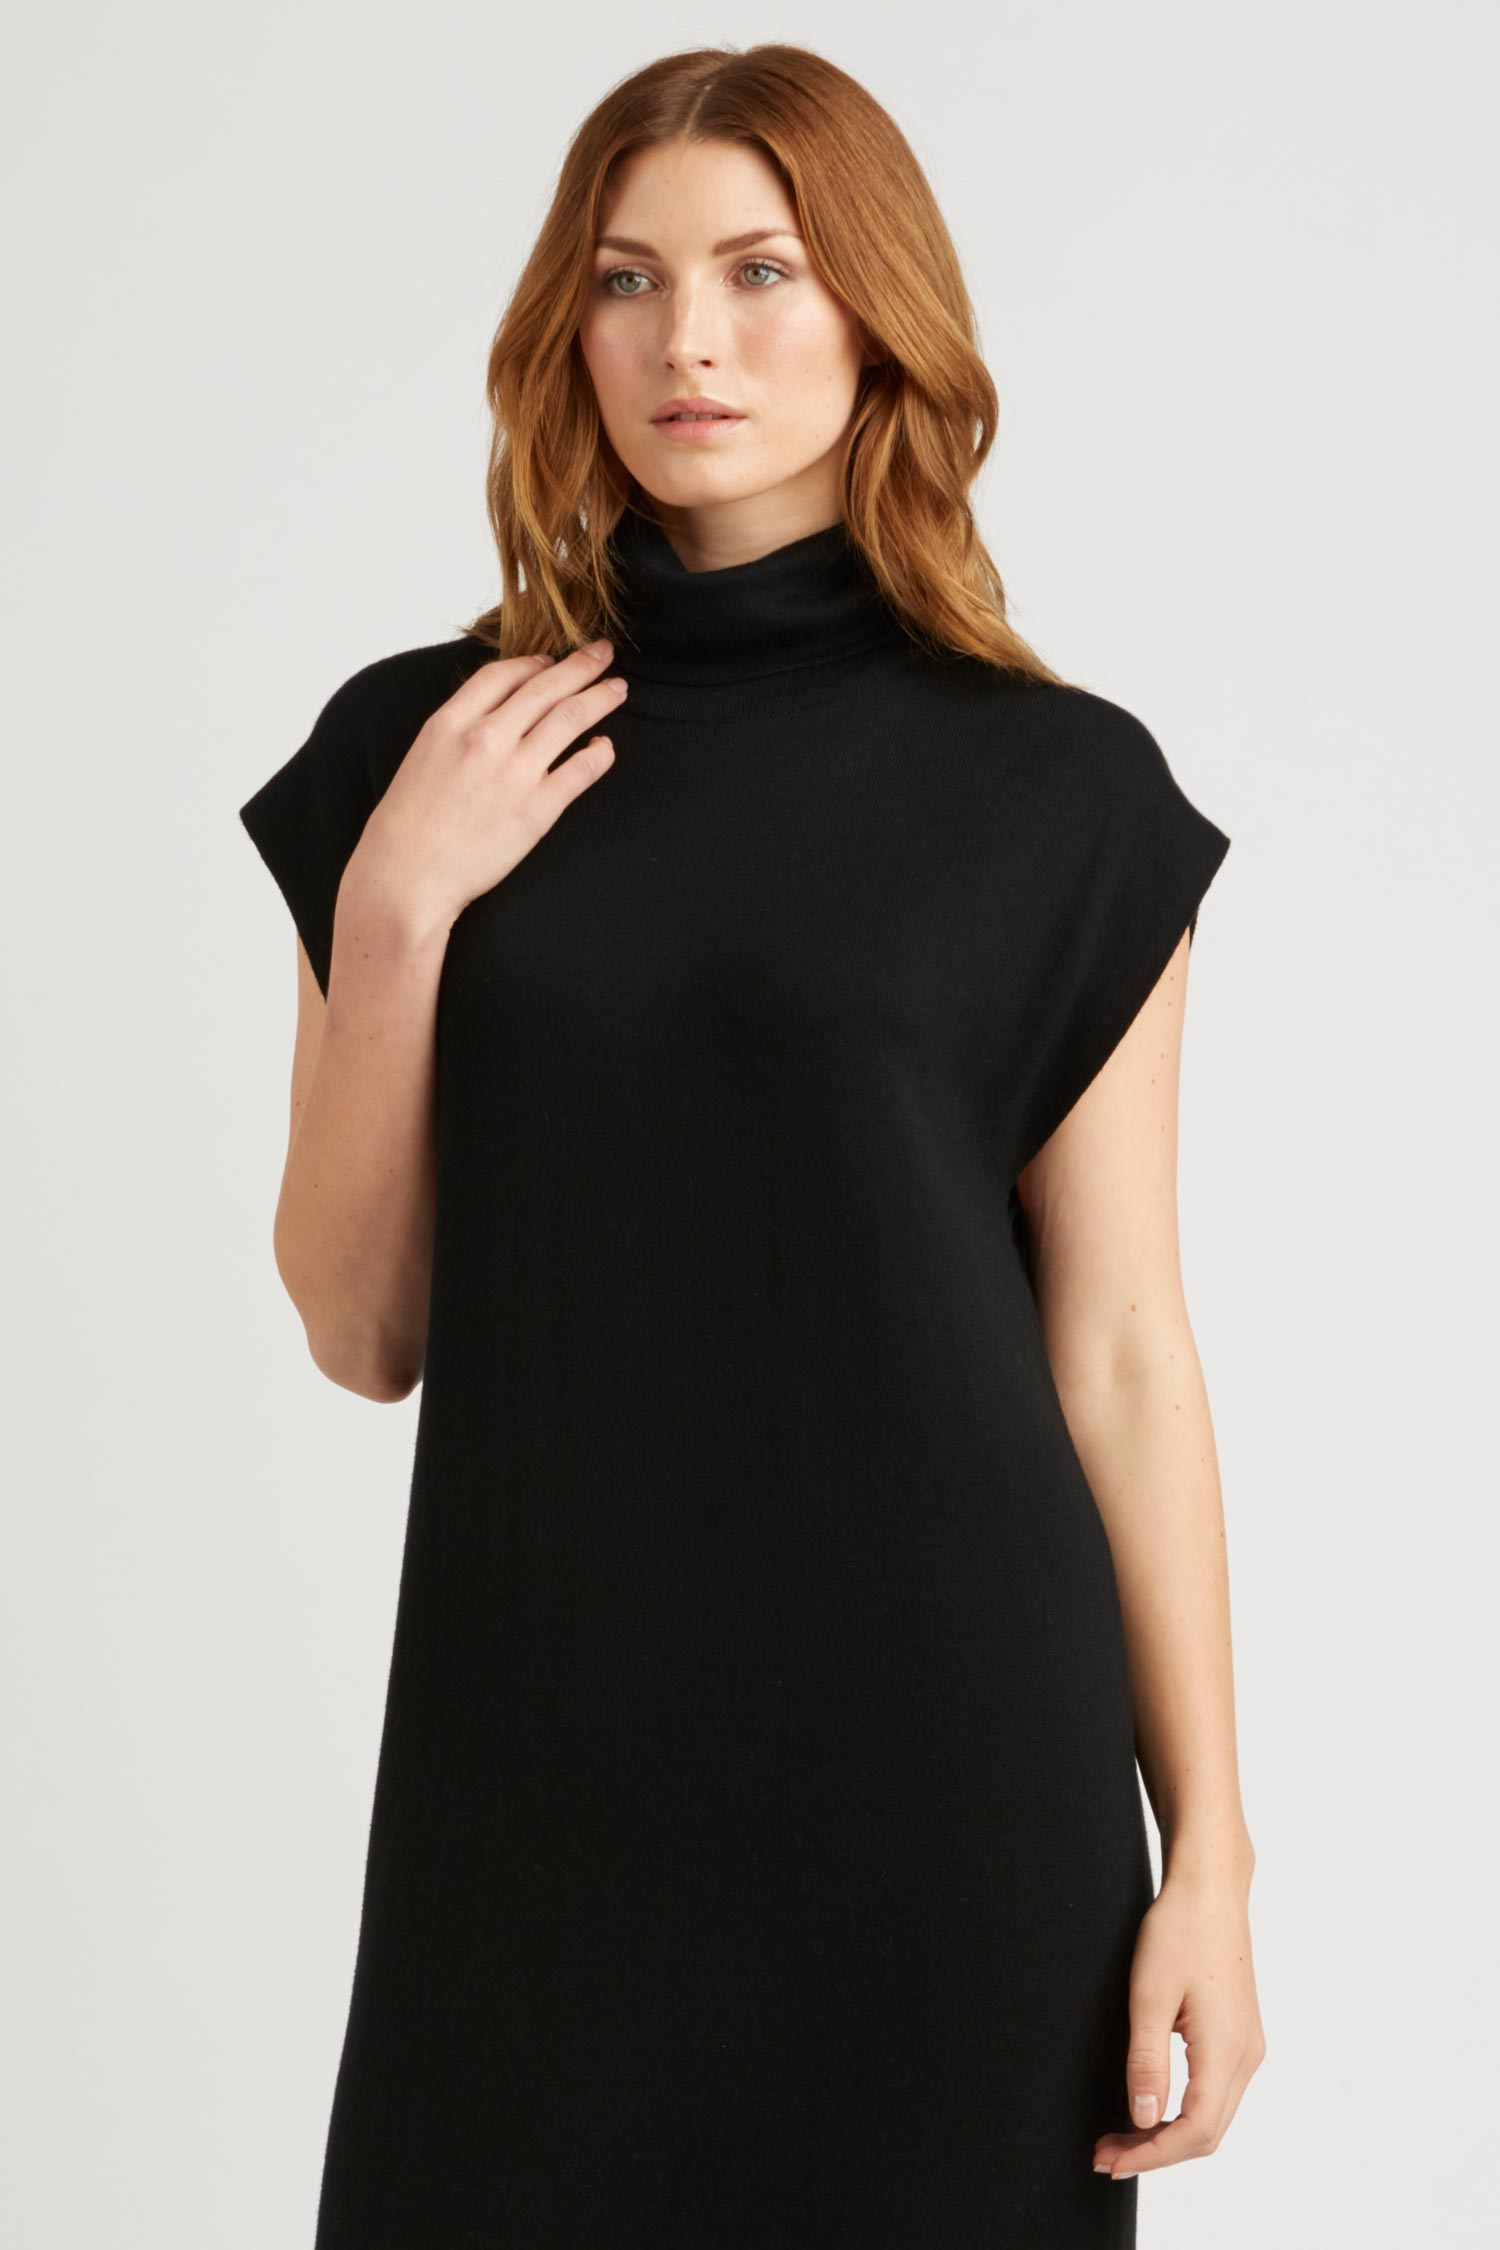 womens sustainable fashion dresses \ black cap sleeve knit dress